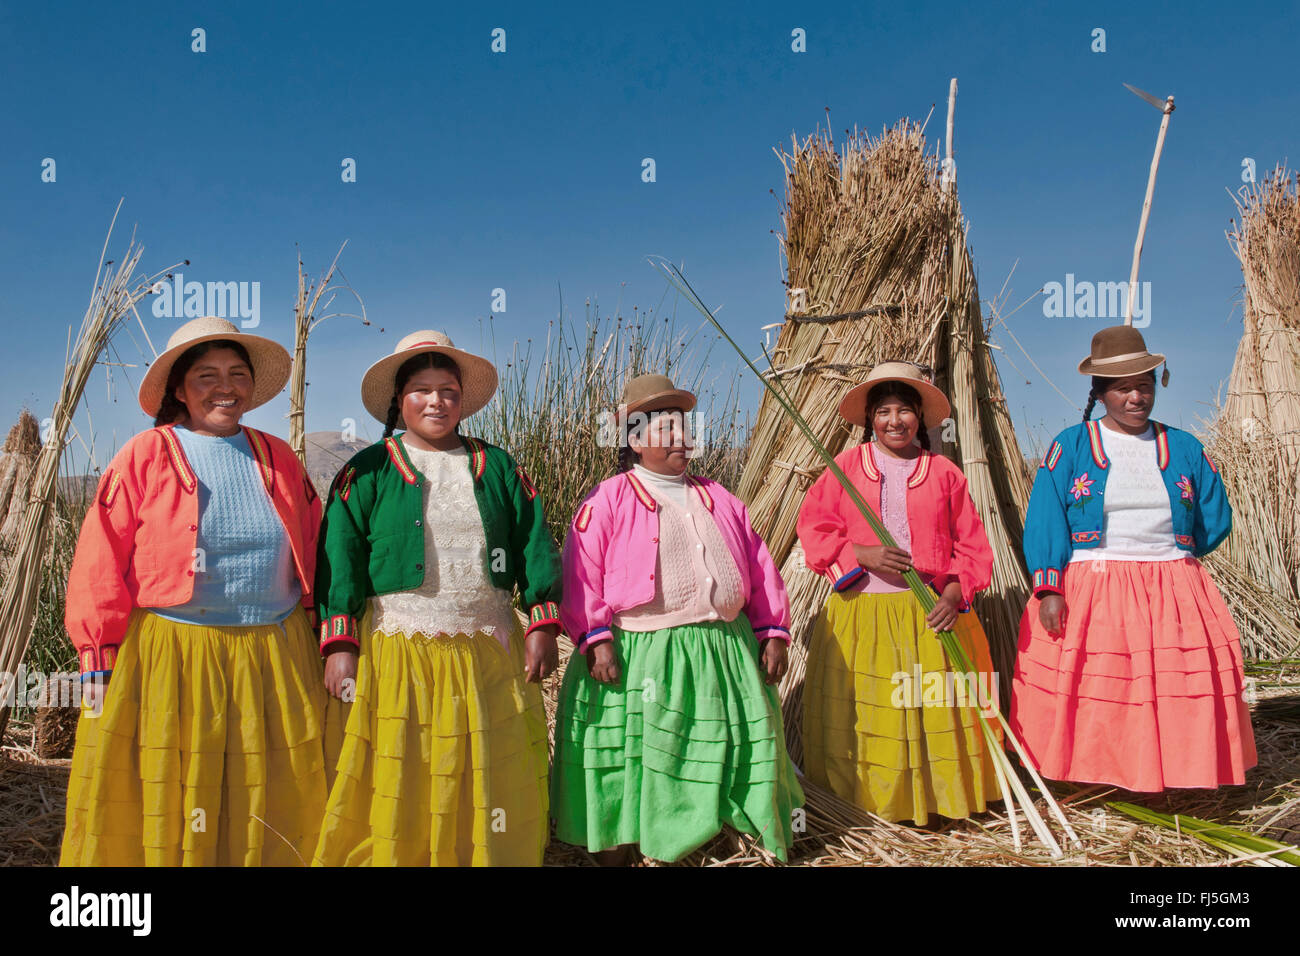 women of the Uros in traditional clothing on a swimming reed island, Uros at the totora harvesting, Peru, Andes - Stock Image